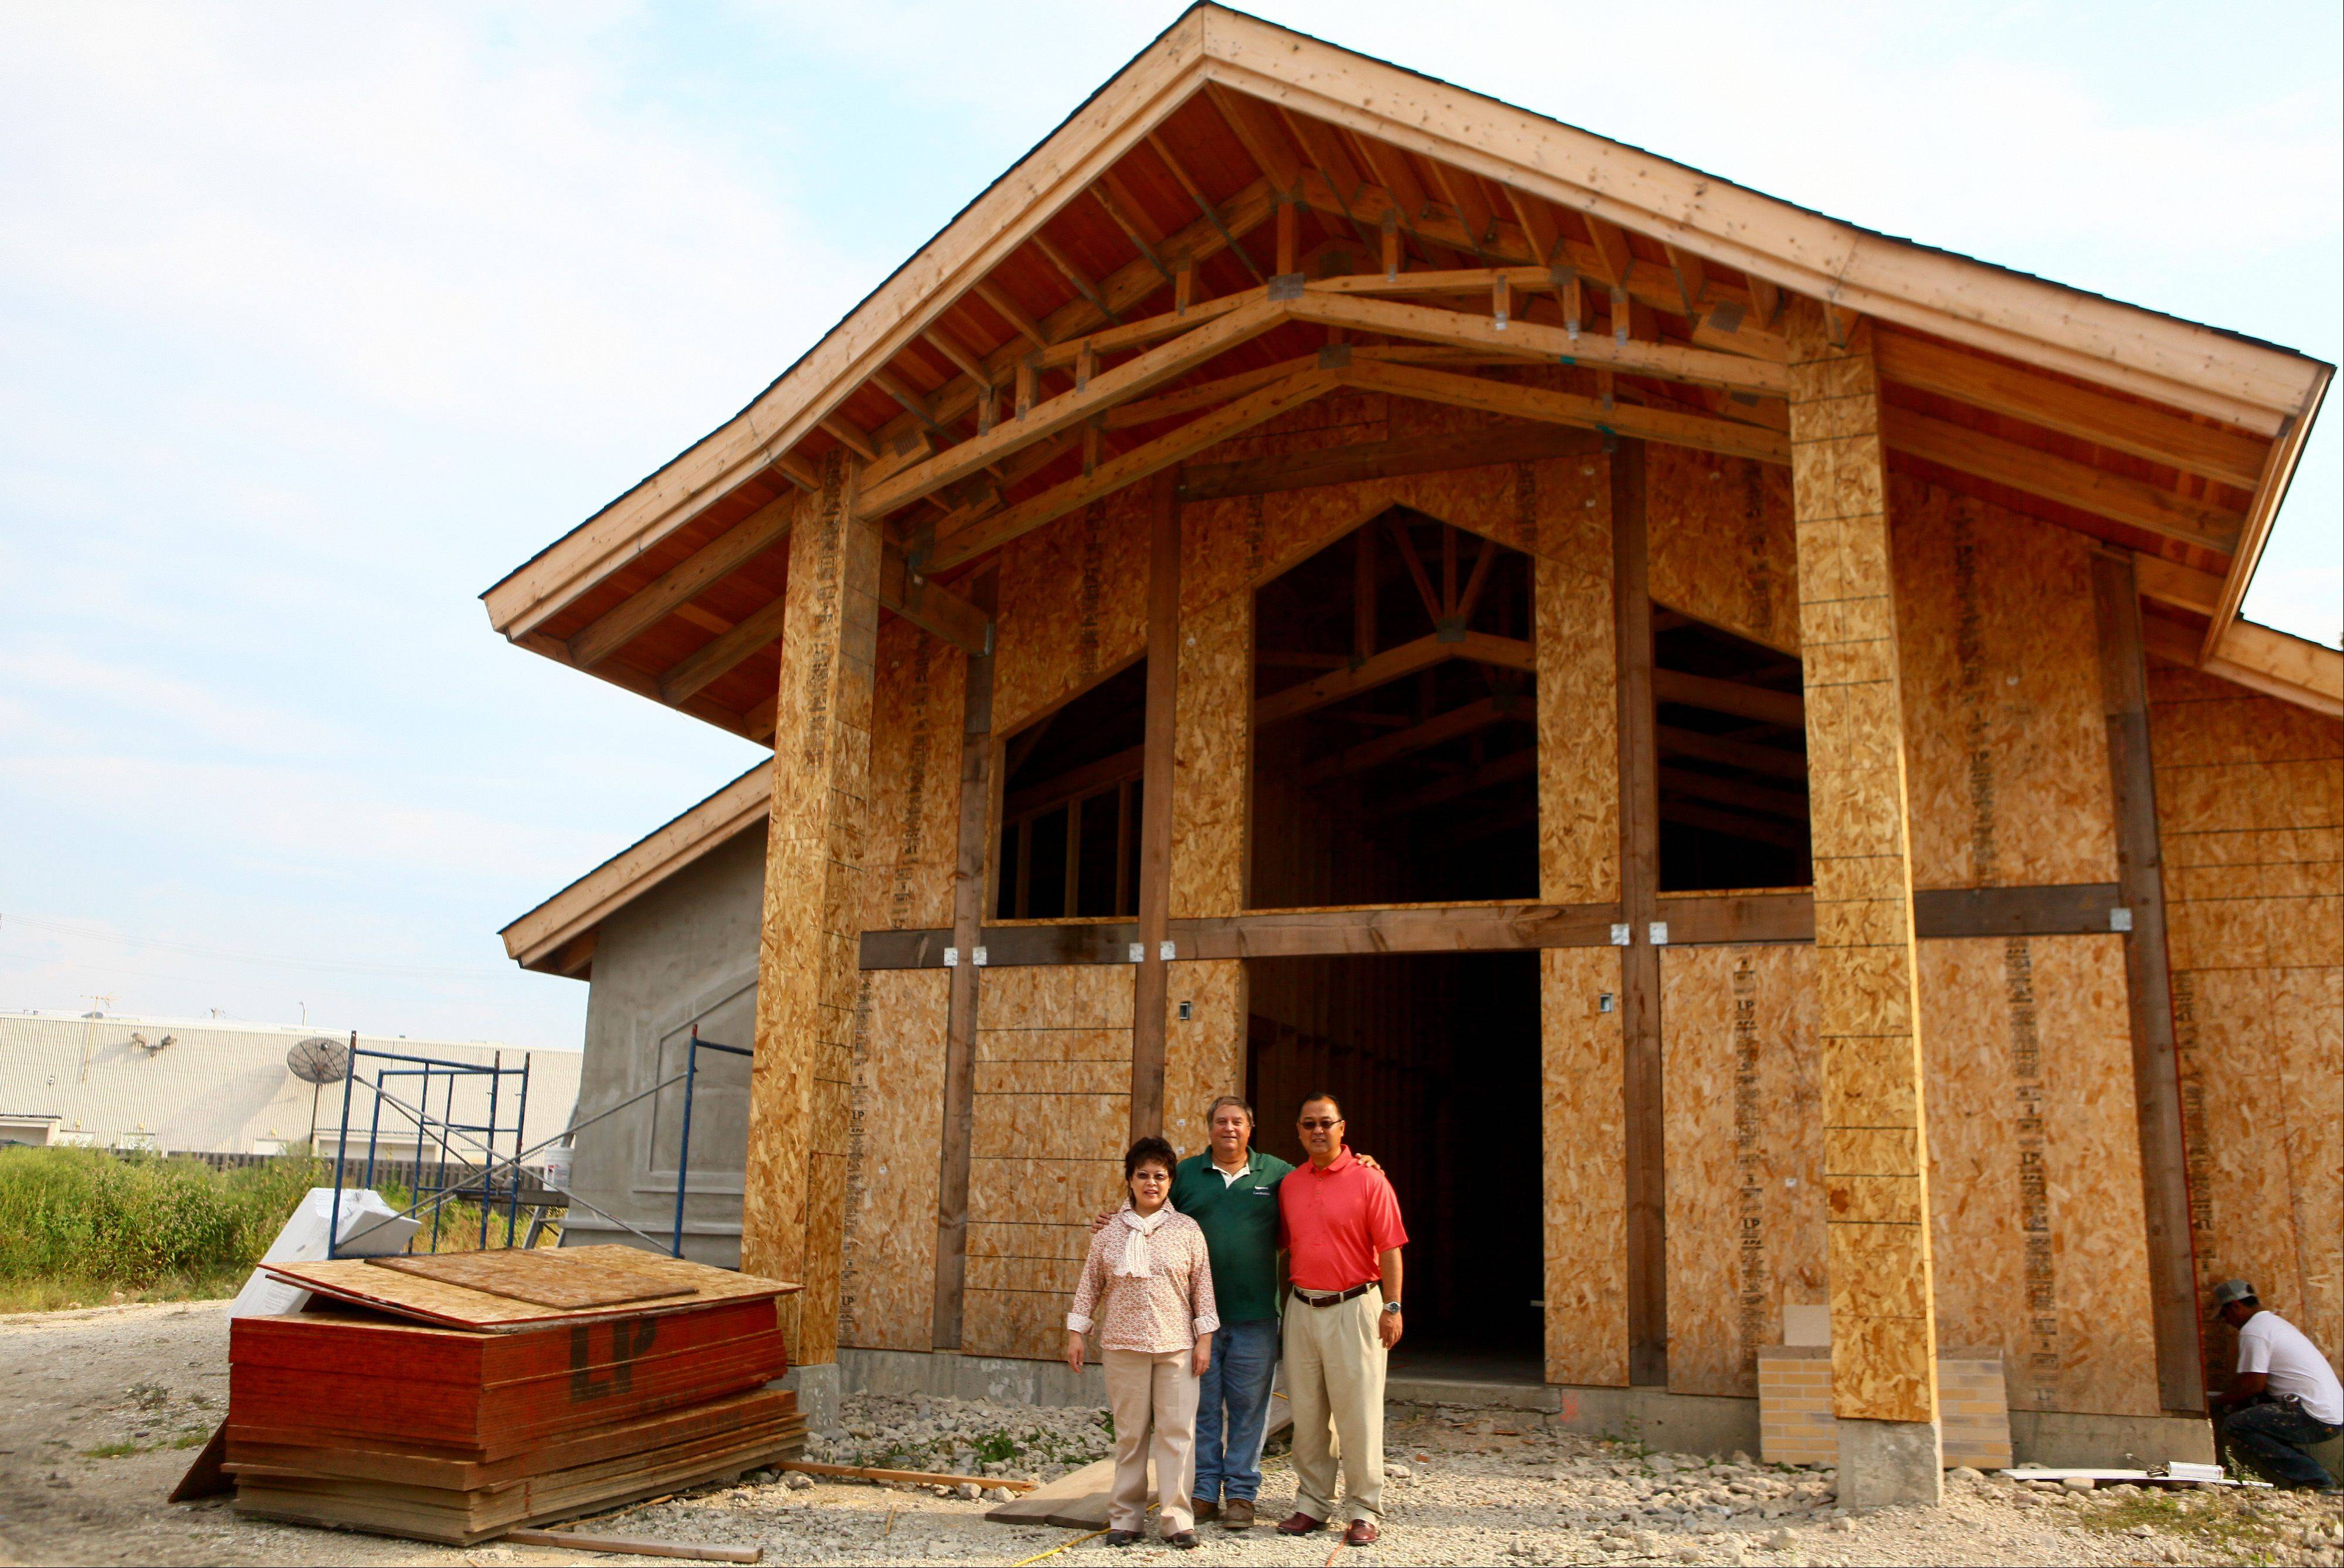 From left, Keiko Kobari, music evangelist, Larry Antemann, contractor, and the Rev. Yugo Kobari stand in front of the new Chicago Japanese Mission Church, under construction at 24 E. Seegers Road in Arlington Heights.